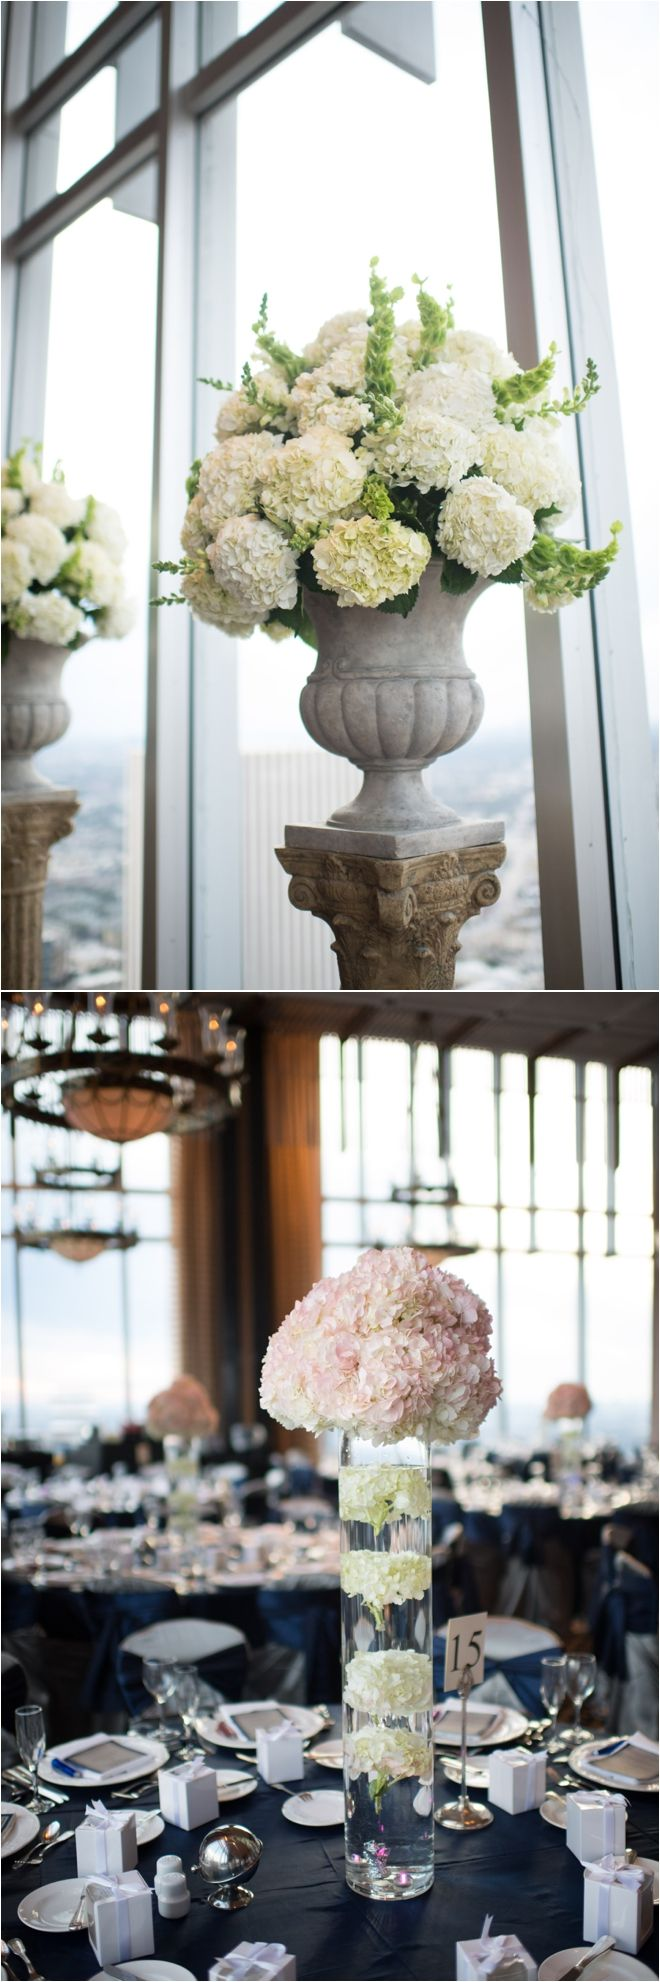 Pink hydrangea centerpiece ~ Photo: Love Lee Photography ~ Venue: Petroleum Club of Houston